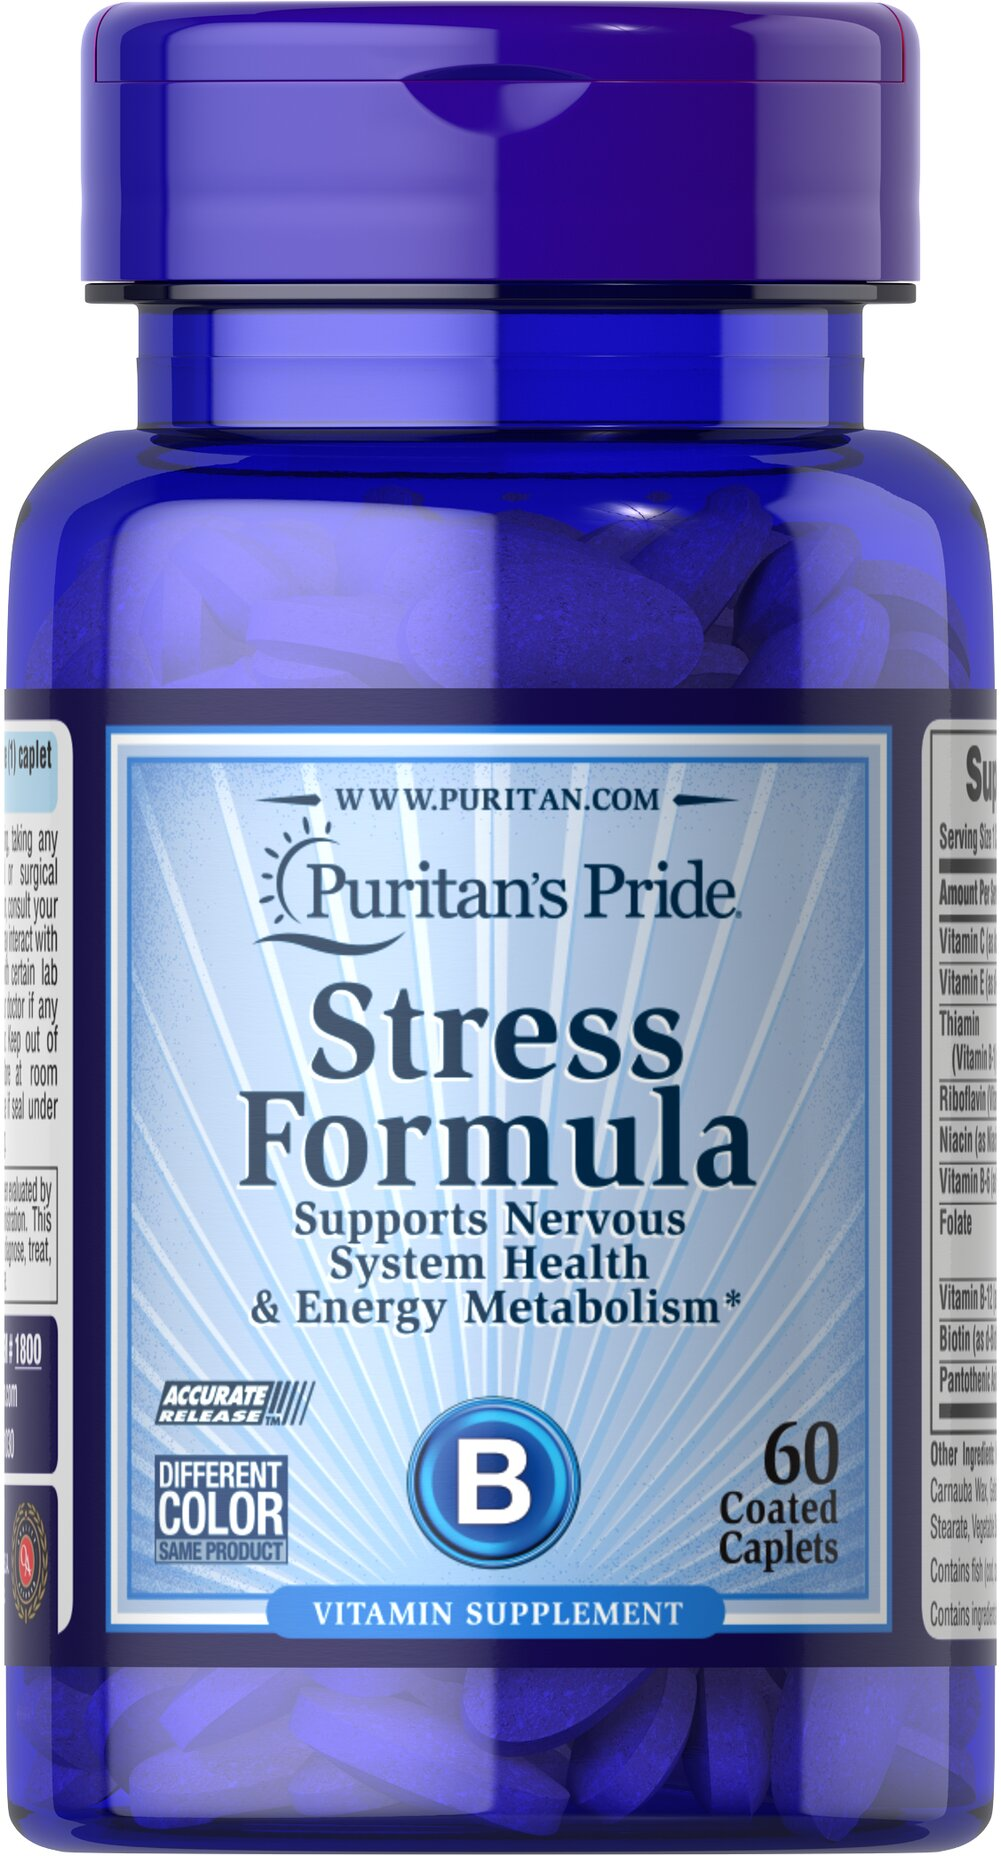 Stress Formula <p>Stress Formula promotes energy metabolism and nervous system health.** Our exclusive combination contains all eight B-Complex vitamins plus Vitamins C and E. The B Complex is made up of several vitamins that work well together to support nervous system health and energy metabolism.** Vitamins C and E promote antioxidant protection and immune system health.**</p>  <p>Compare and save!</p> 60 Caplets  $8.99